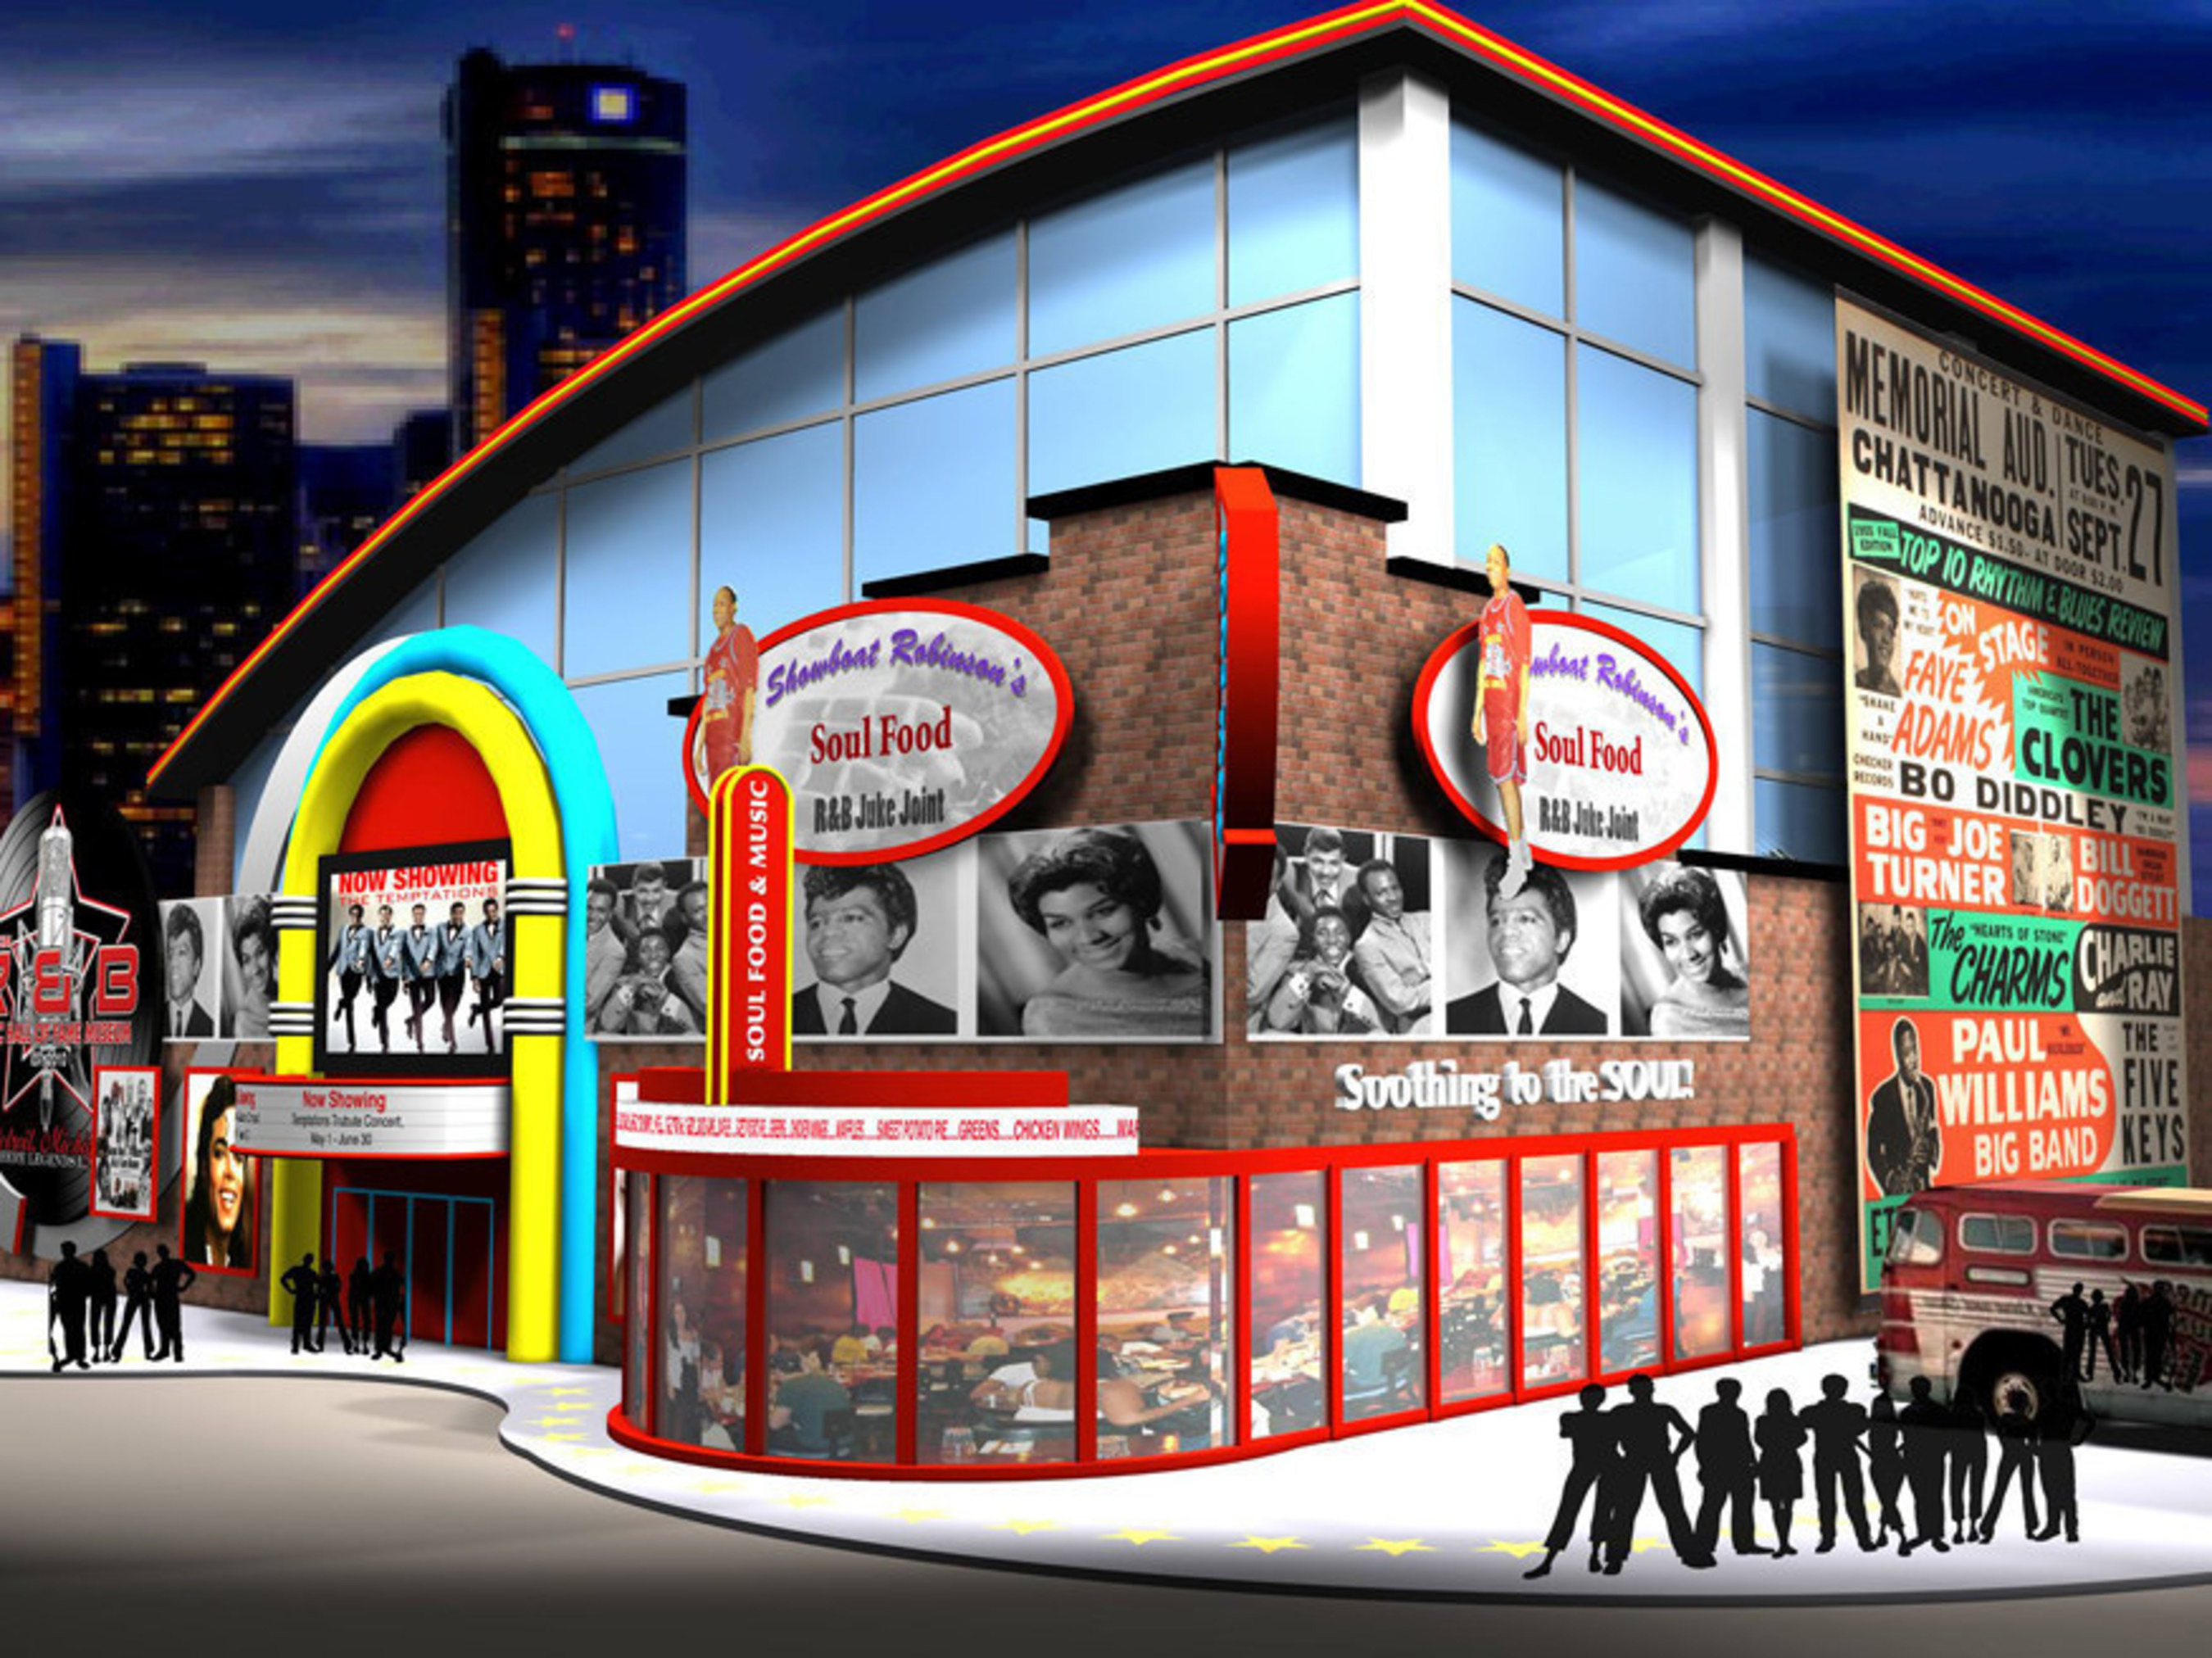 Rhythm & Blues Hall of Fame is Looking for a City for R&B Music Legends